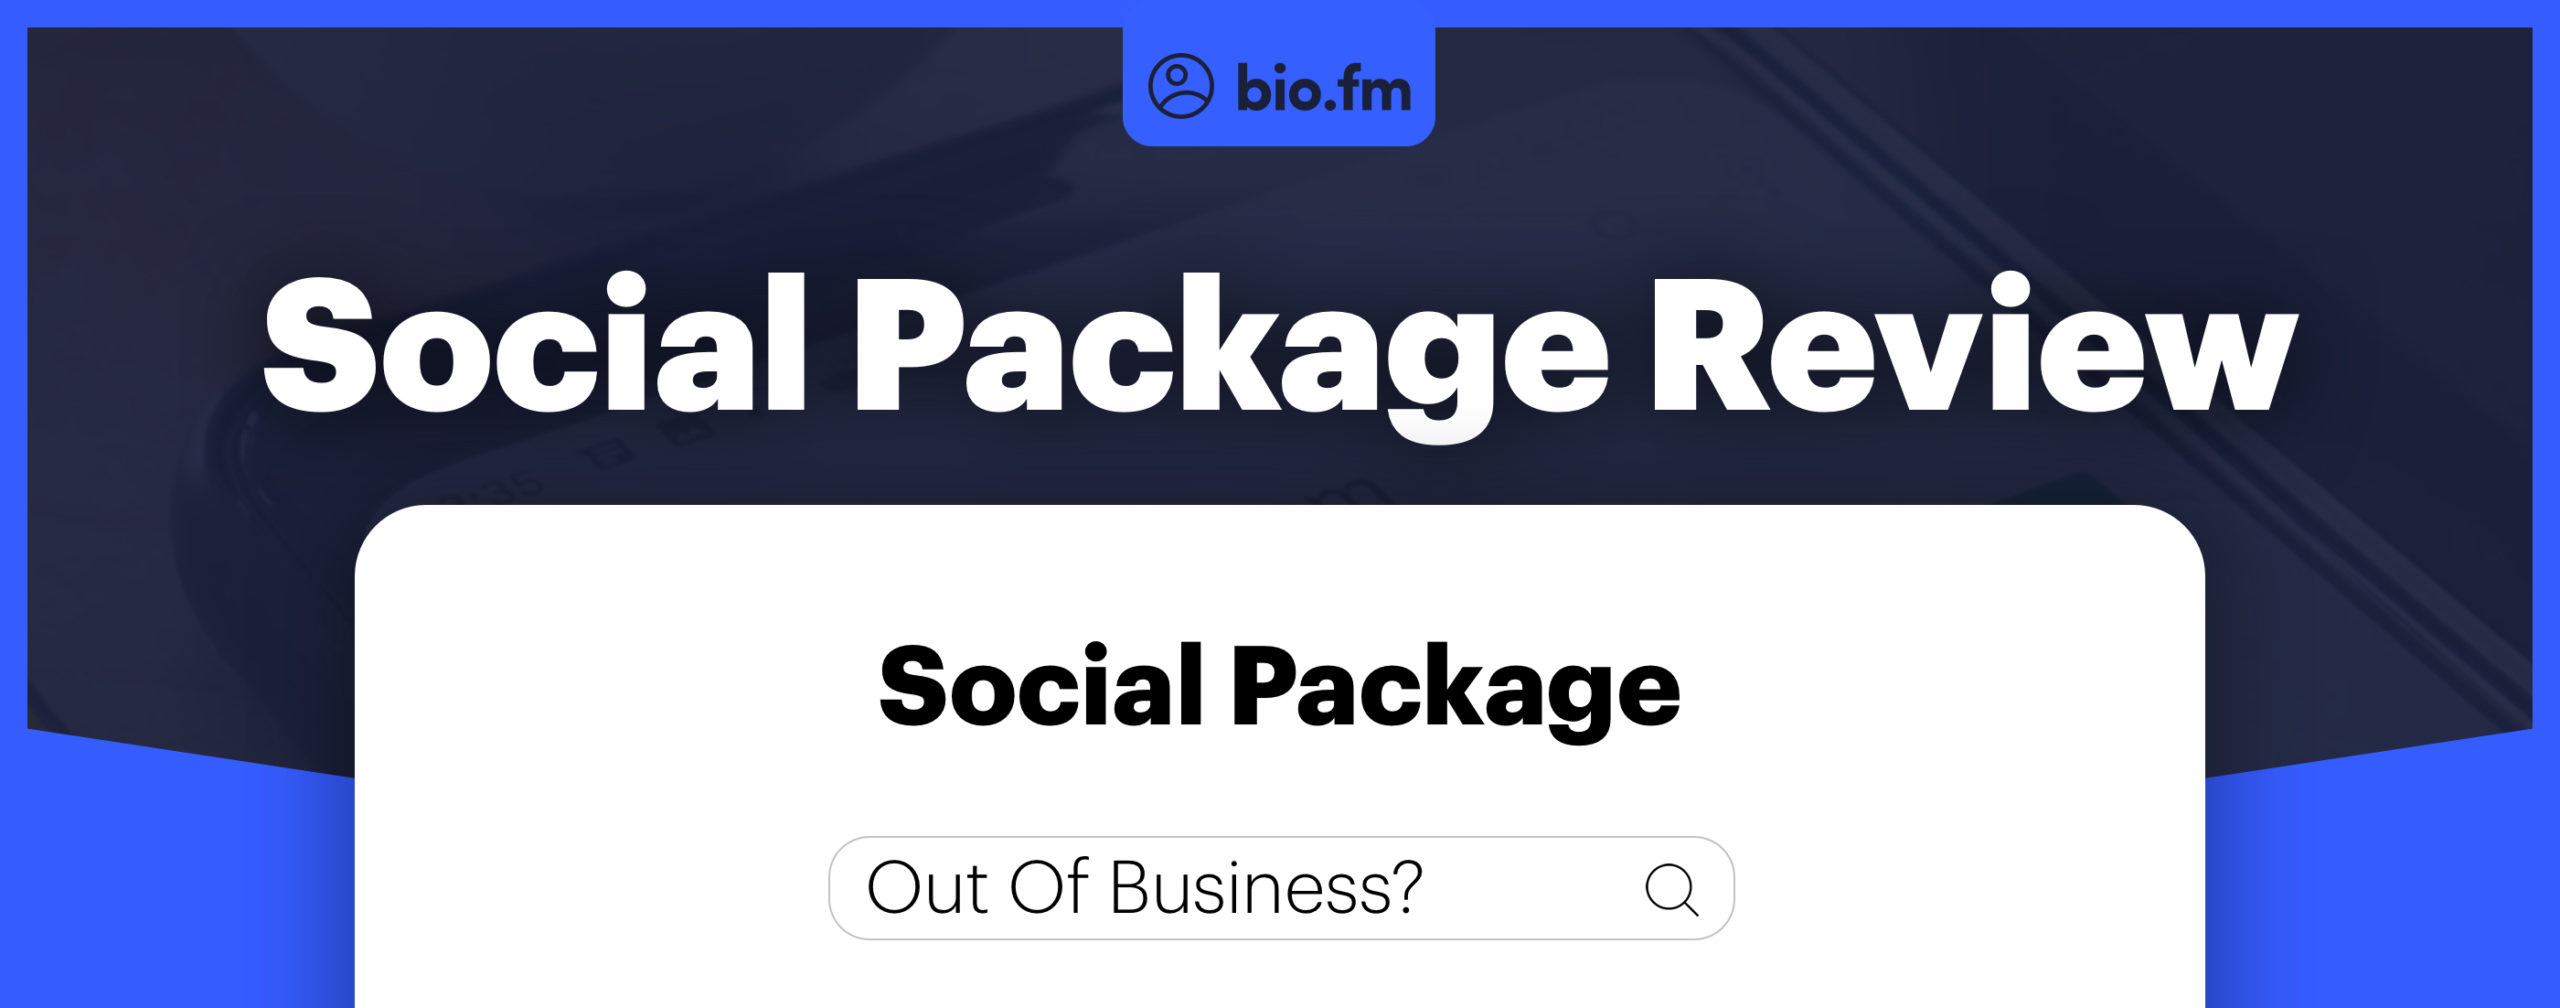 socialpackage review featured image